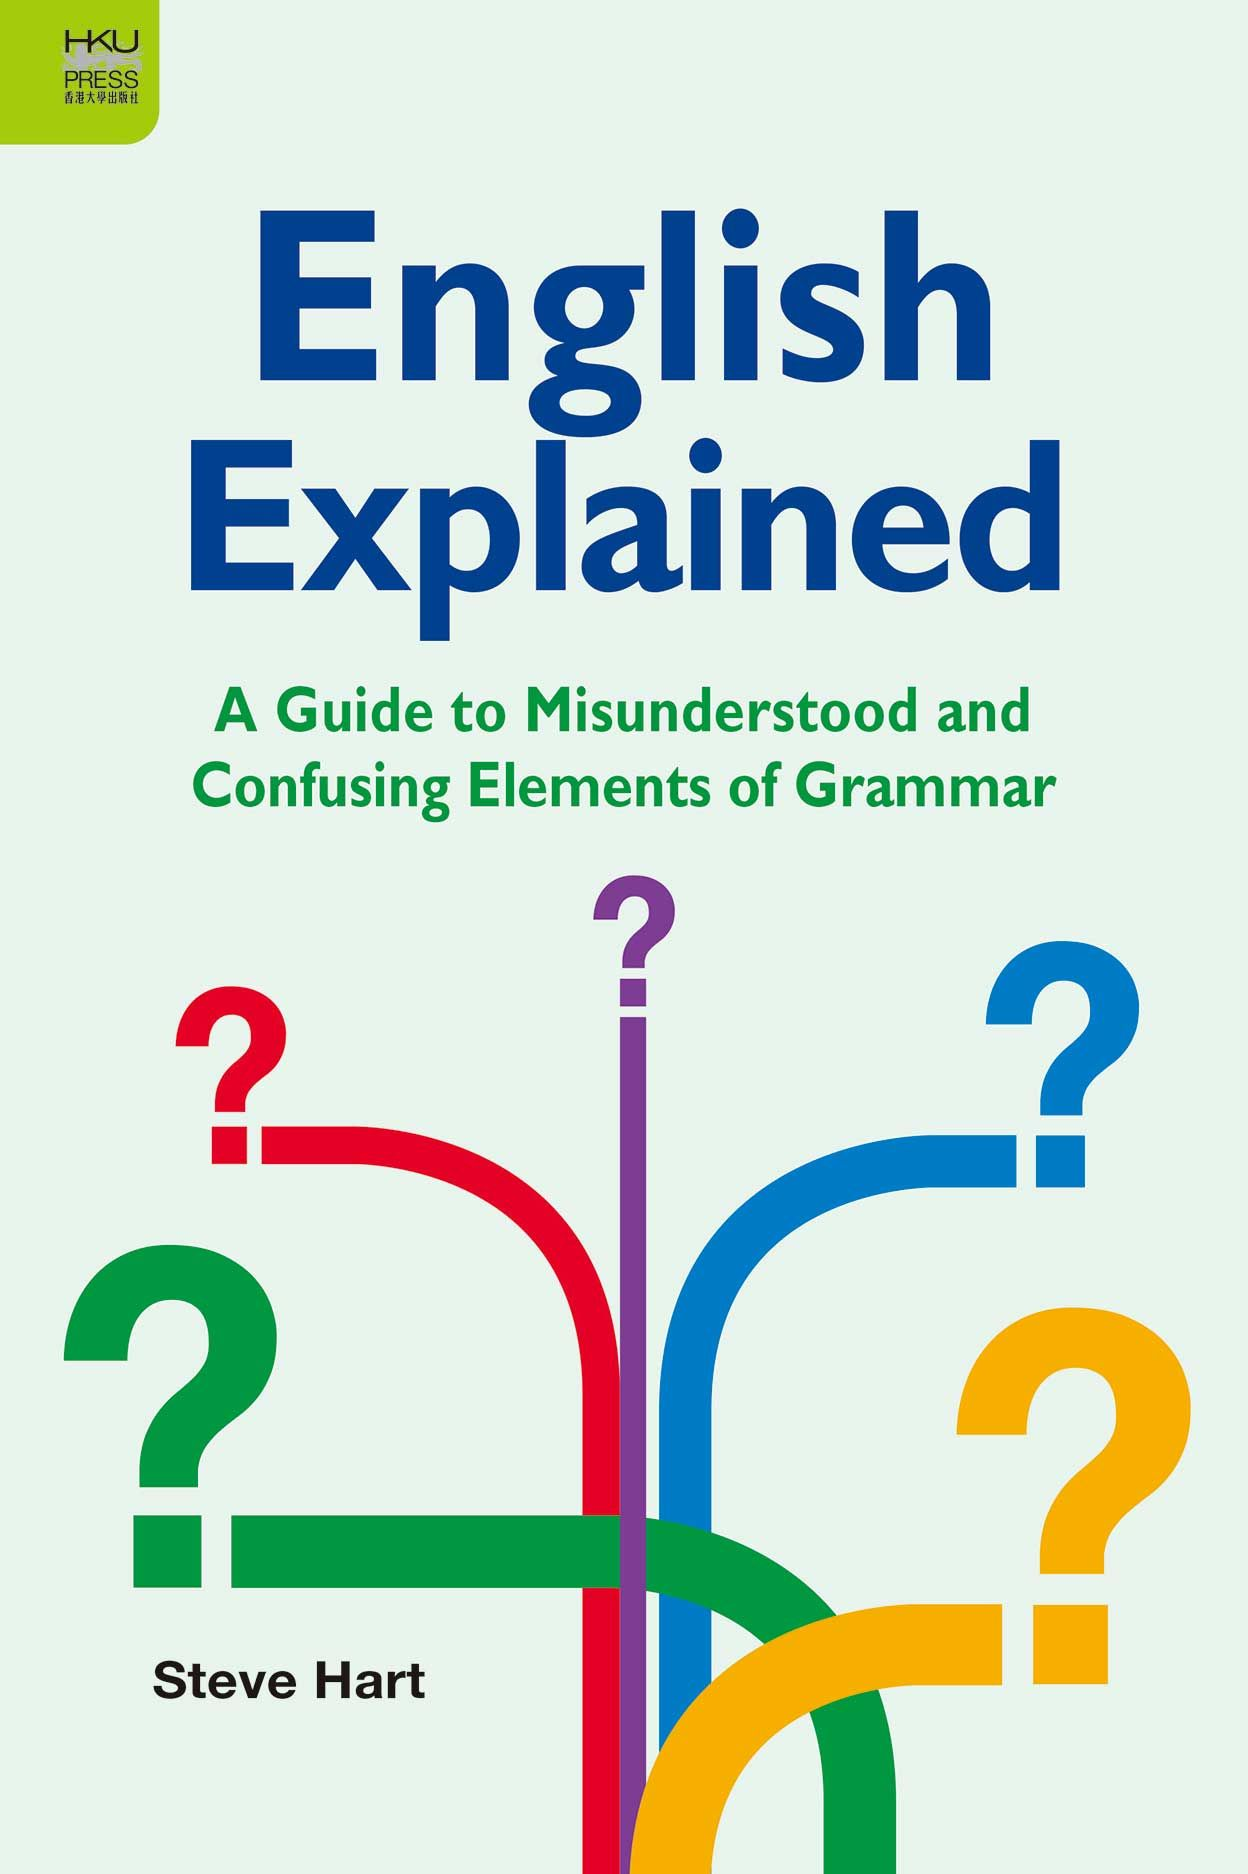 English Explained: A Guide to Misunderstood and Confusing Elements of Grammar